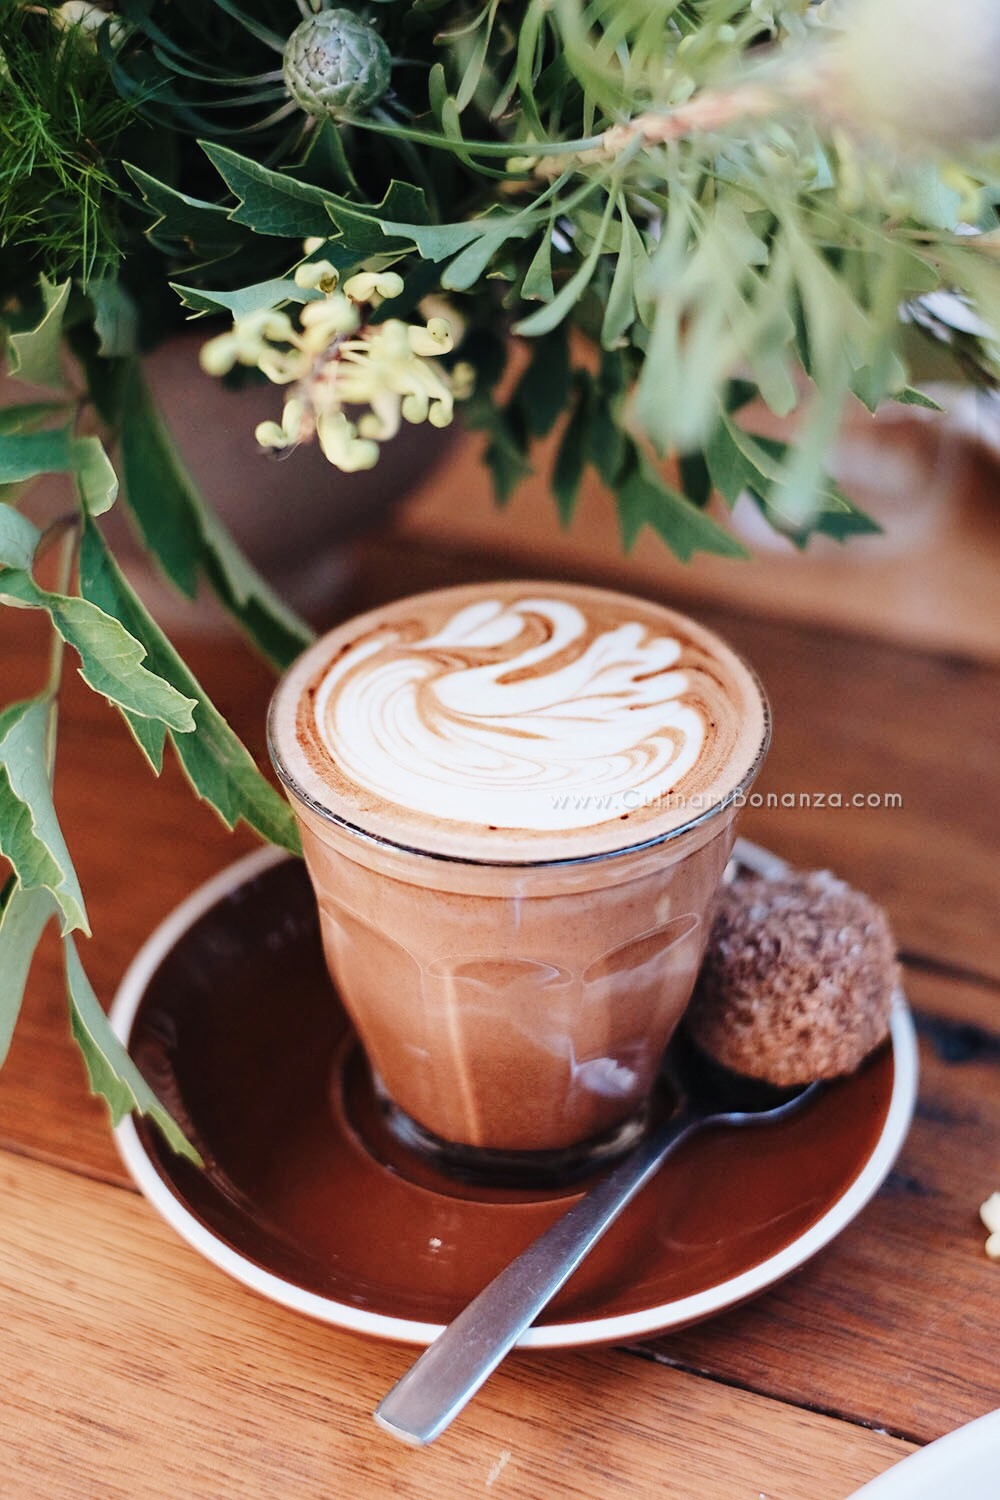 Naked-Foods-Sydney-Influencer-Breakfast-(www.culinarybonanza.com)